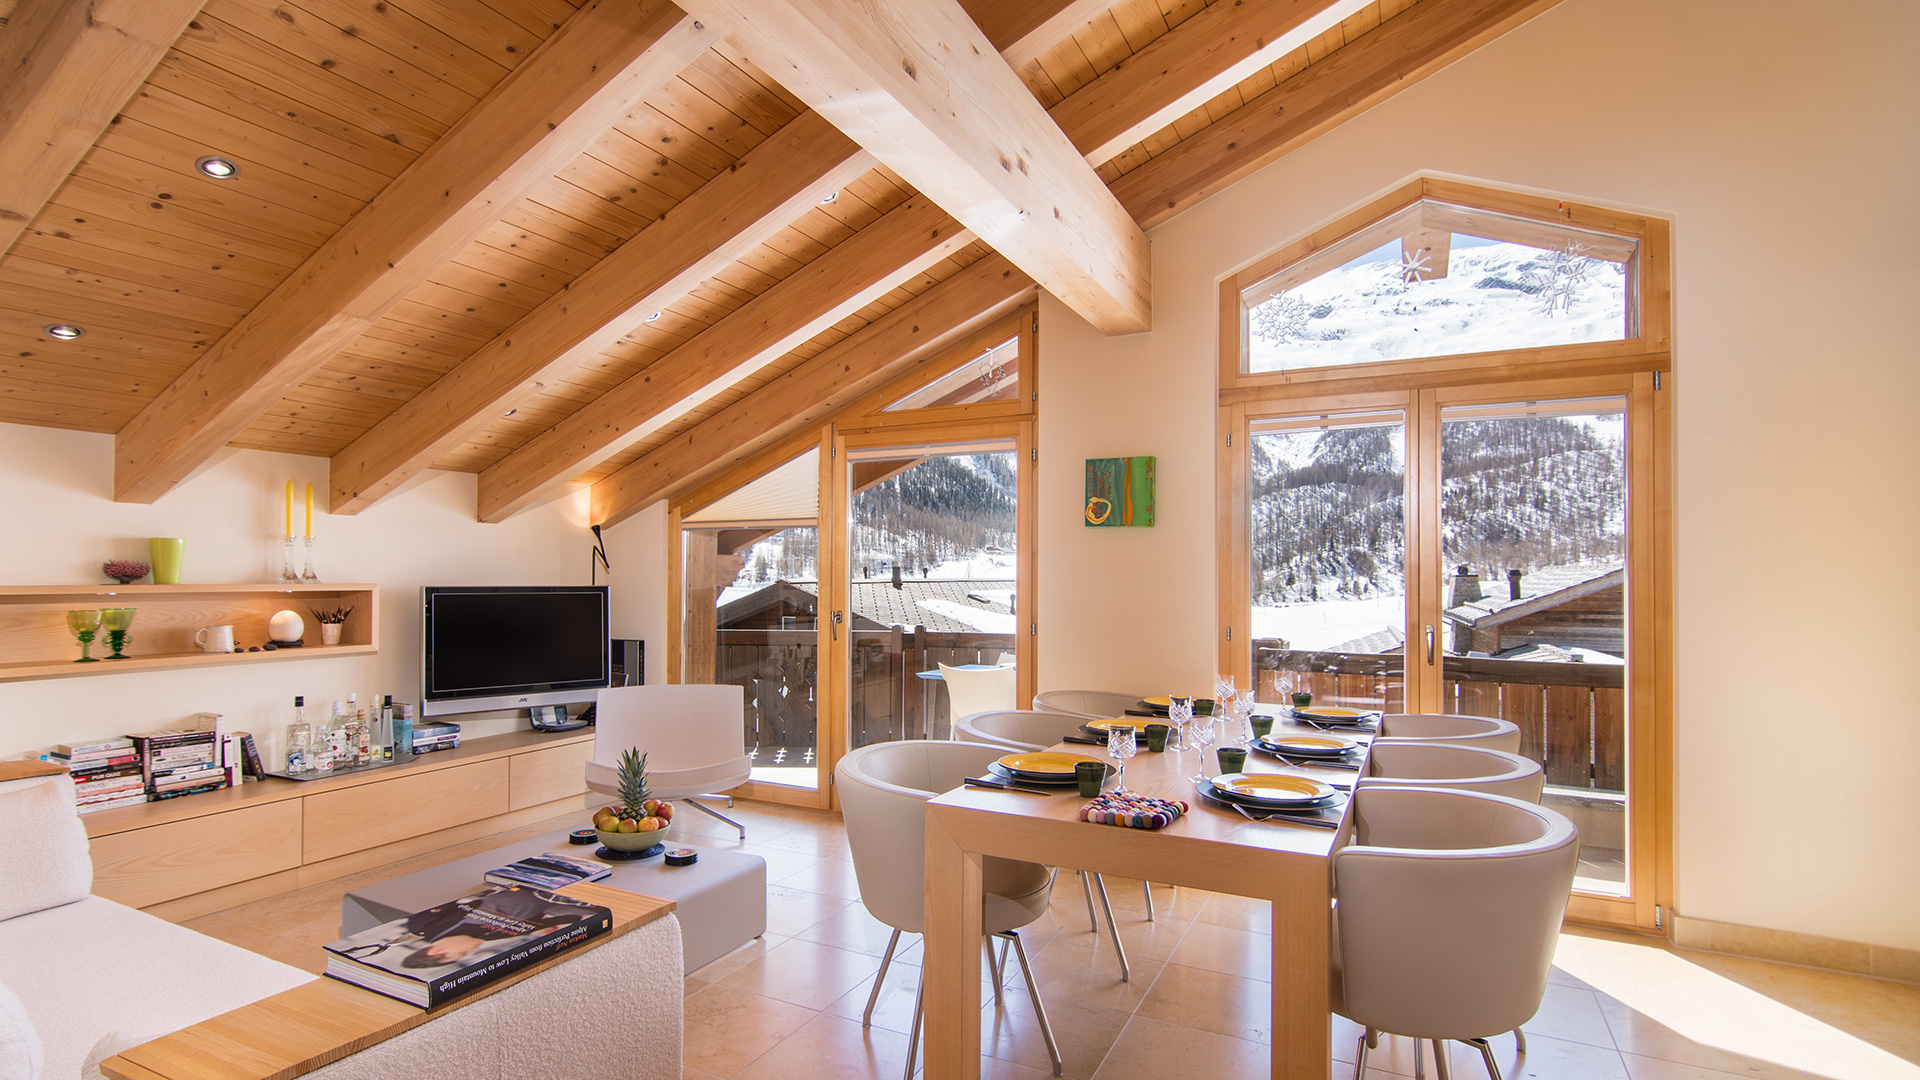 Chalet Aramis 4.2 Apartments, Switzerland